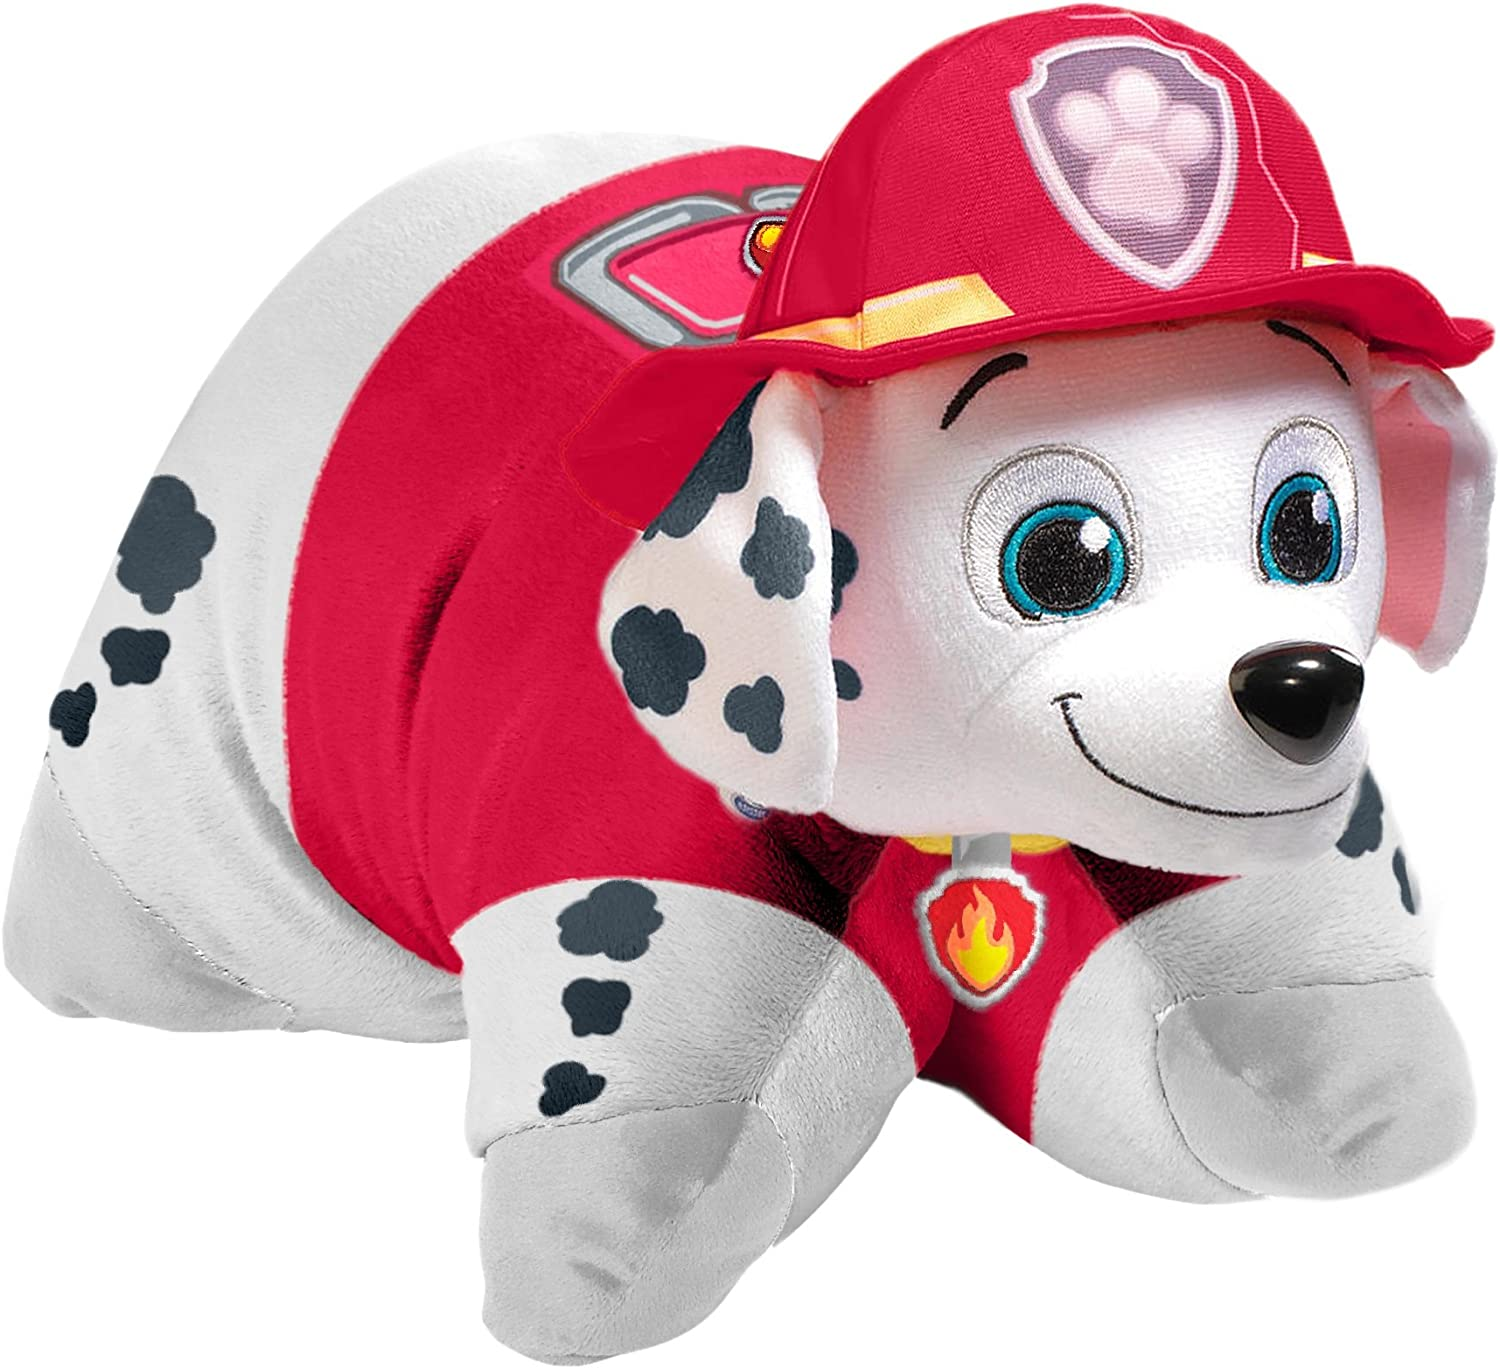 Paw Patrol Marshal Pillow Pet (Dispatched from UK)